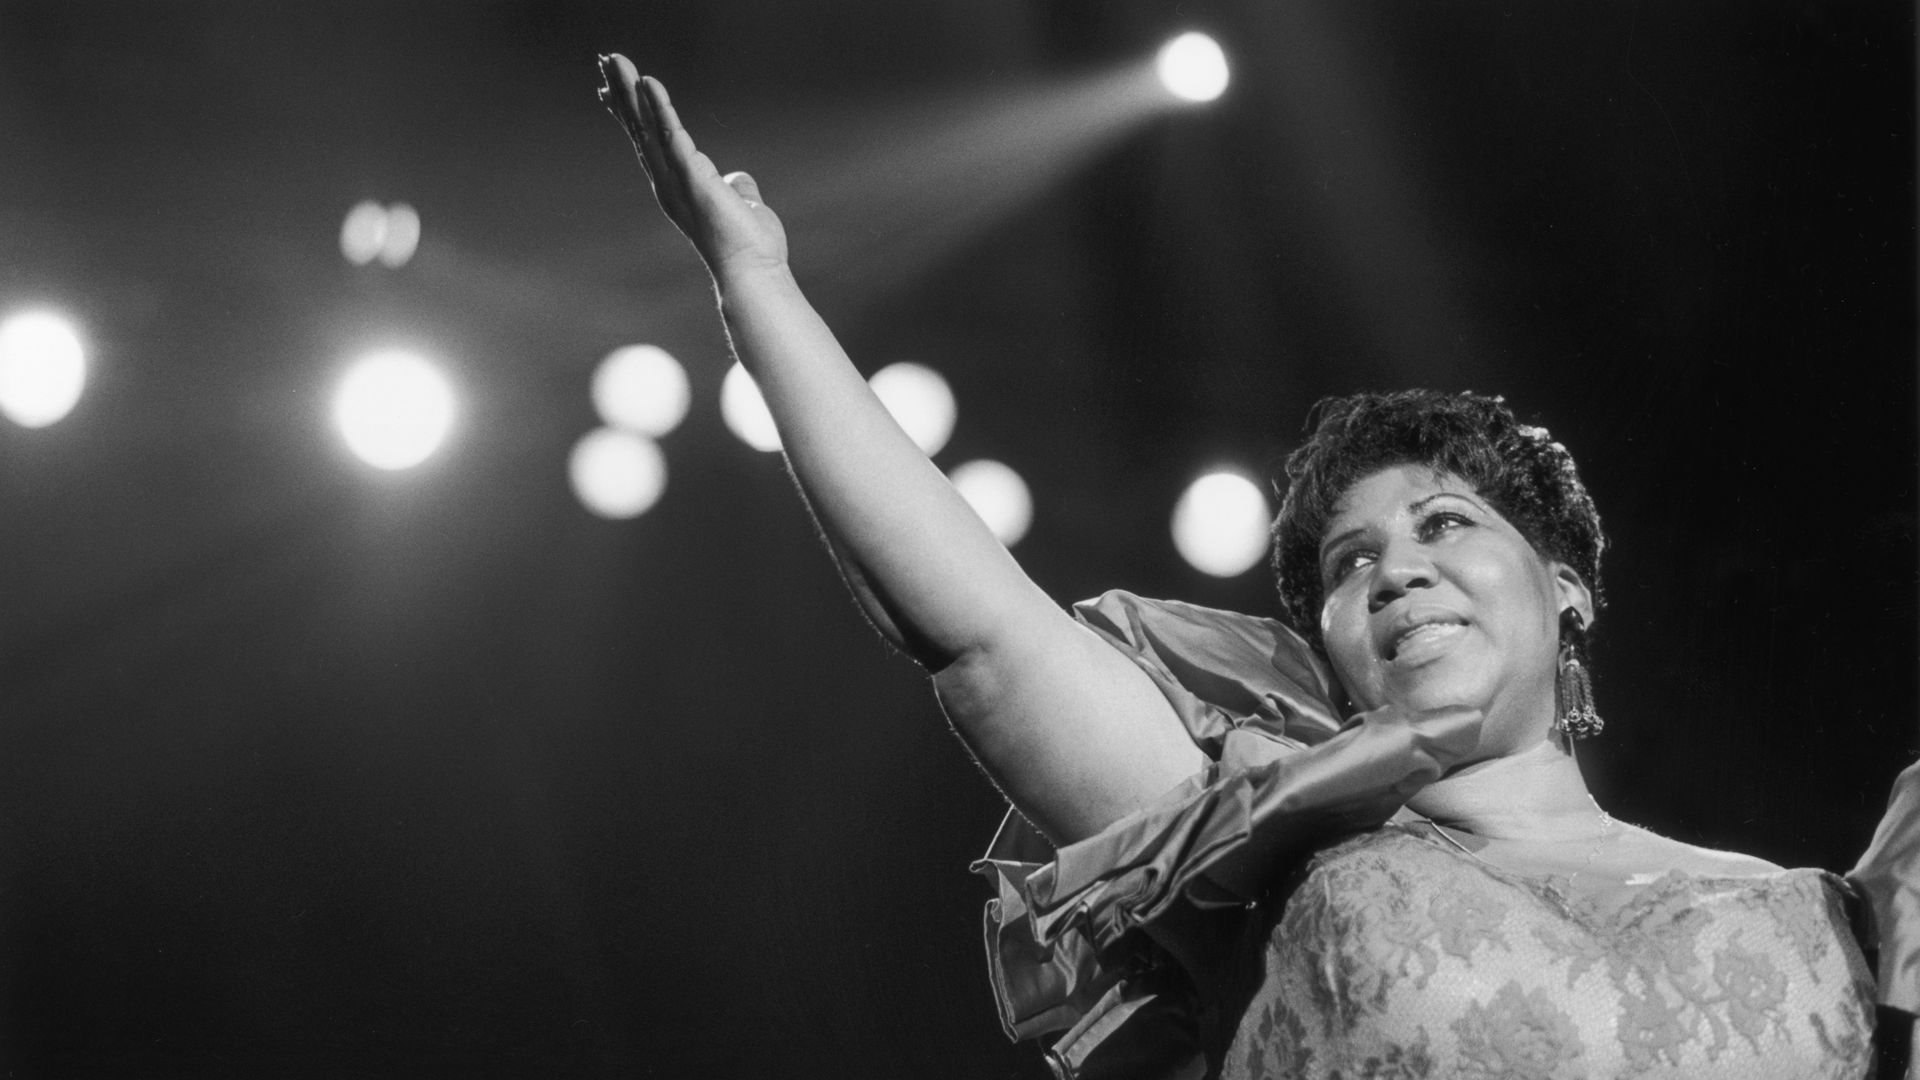 Soul singer Aretha Franklin performing at the New Orleans Jazz Festival in 1994.